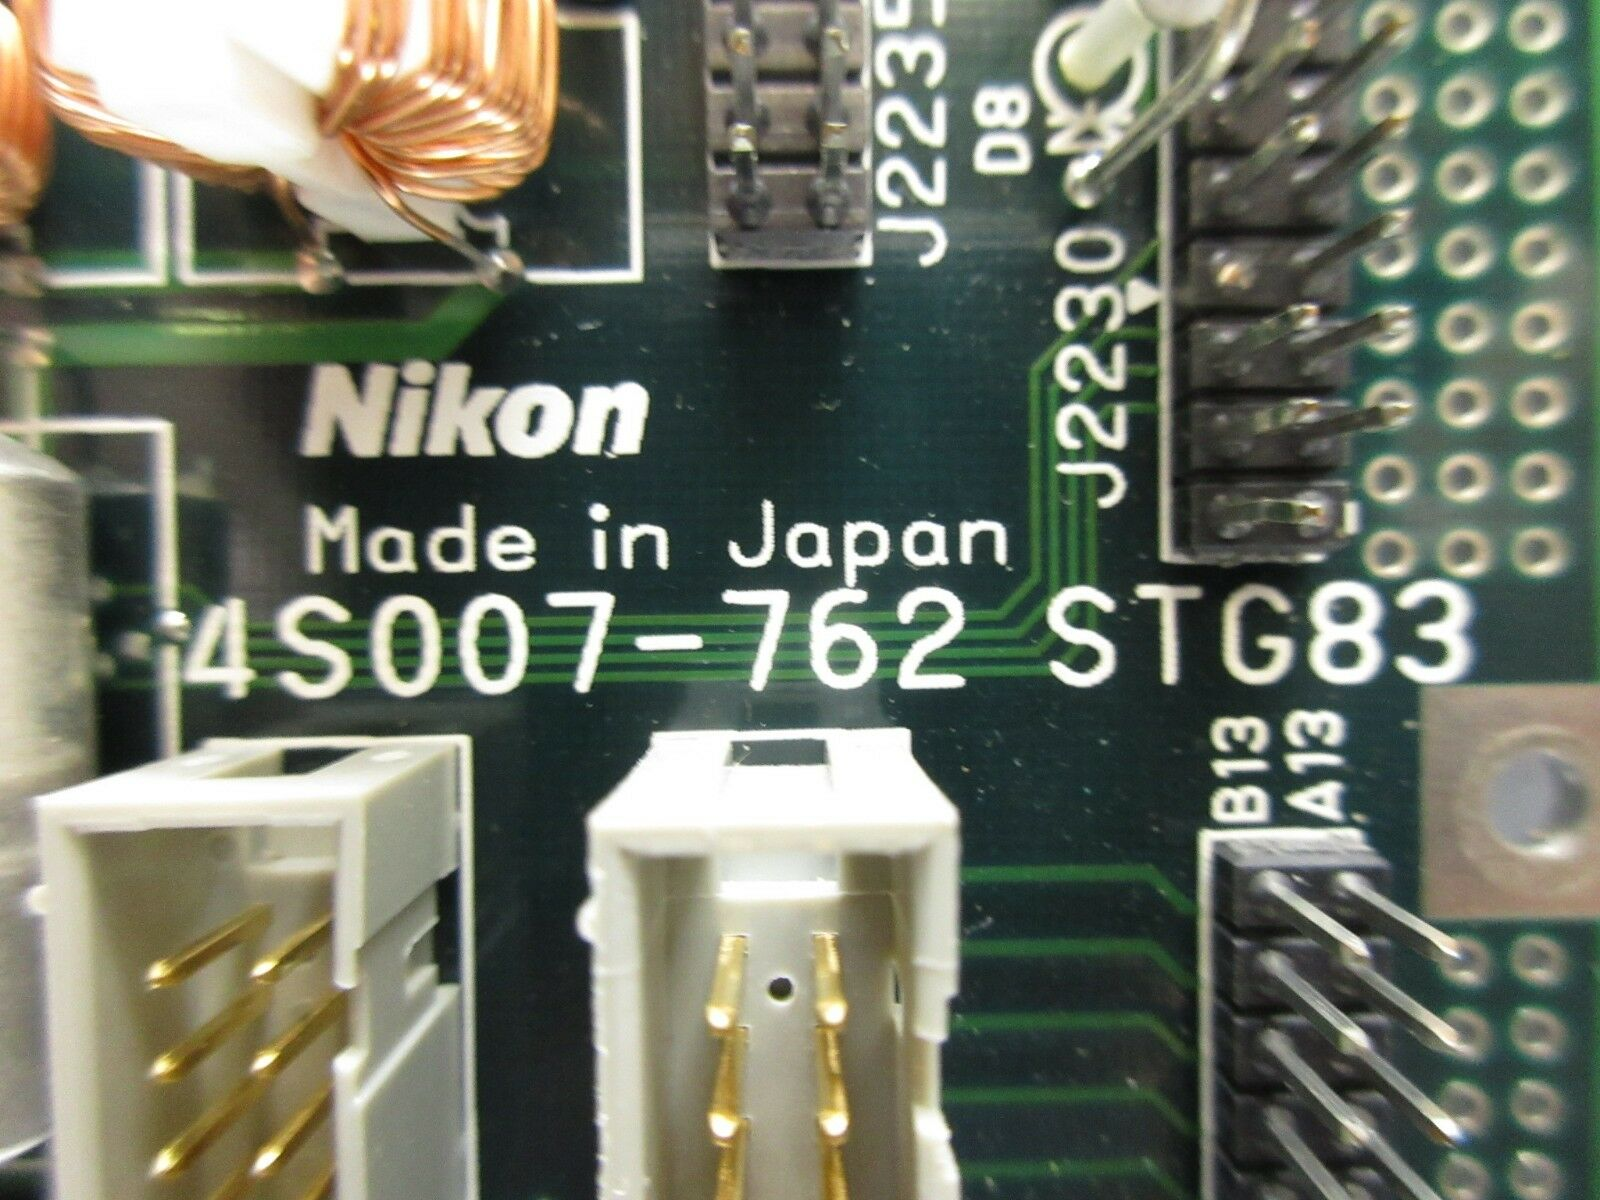 Nikon 4S007-762 Interface Board PCB STG83 NSR-S204B System Used Working